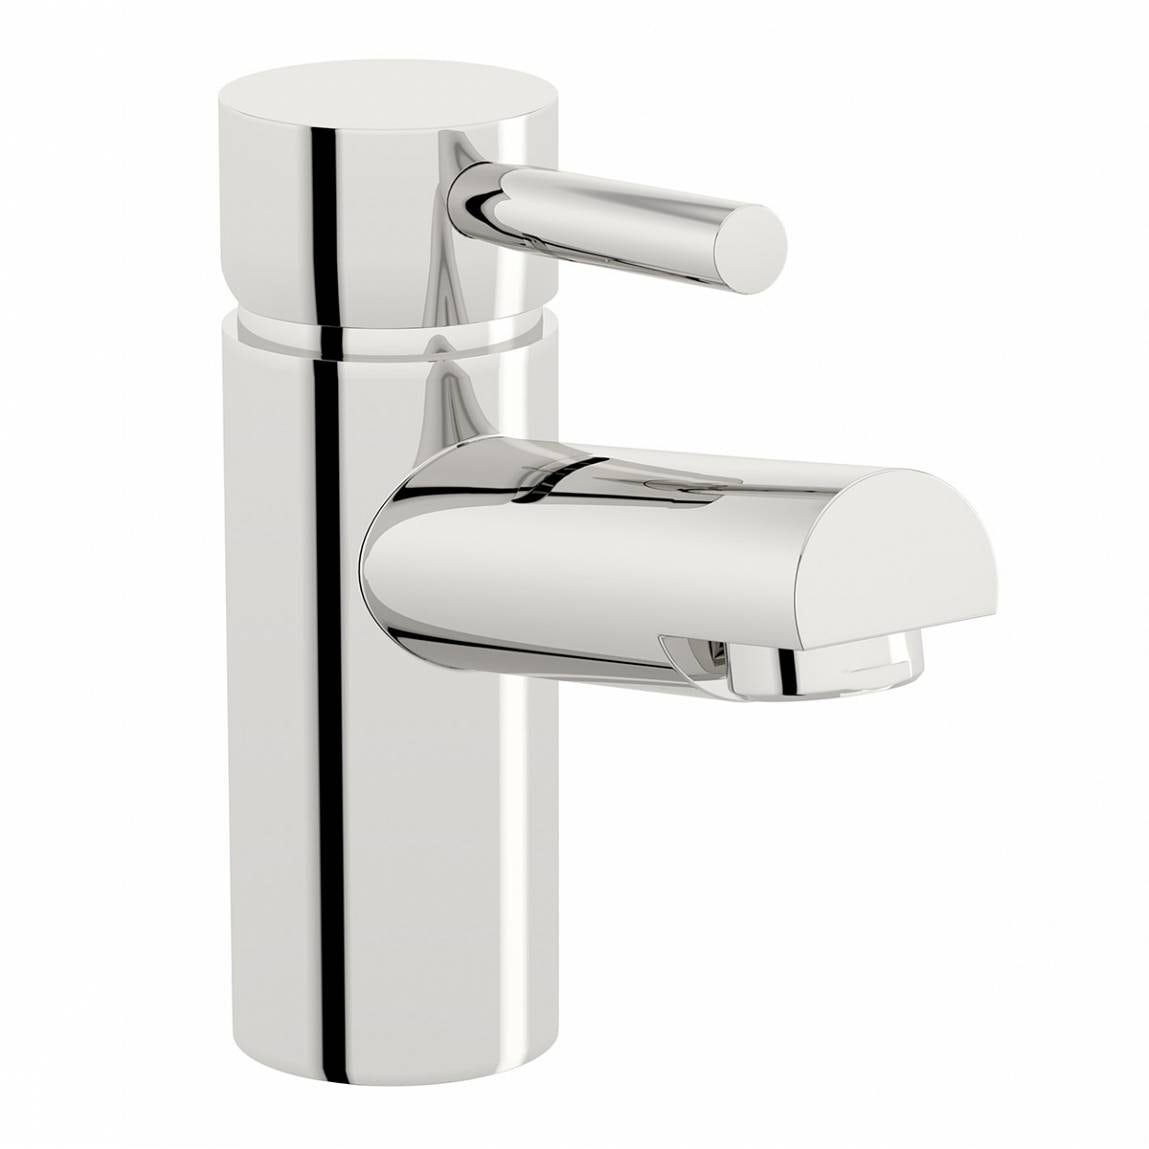 Orchard Wharfe cloakroom basin mixer tap offer pack